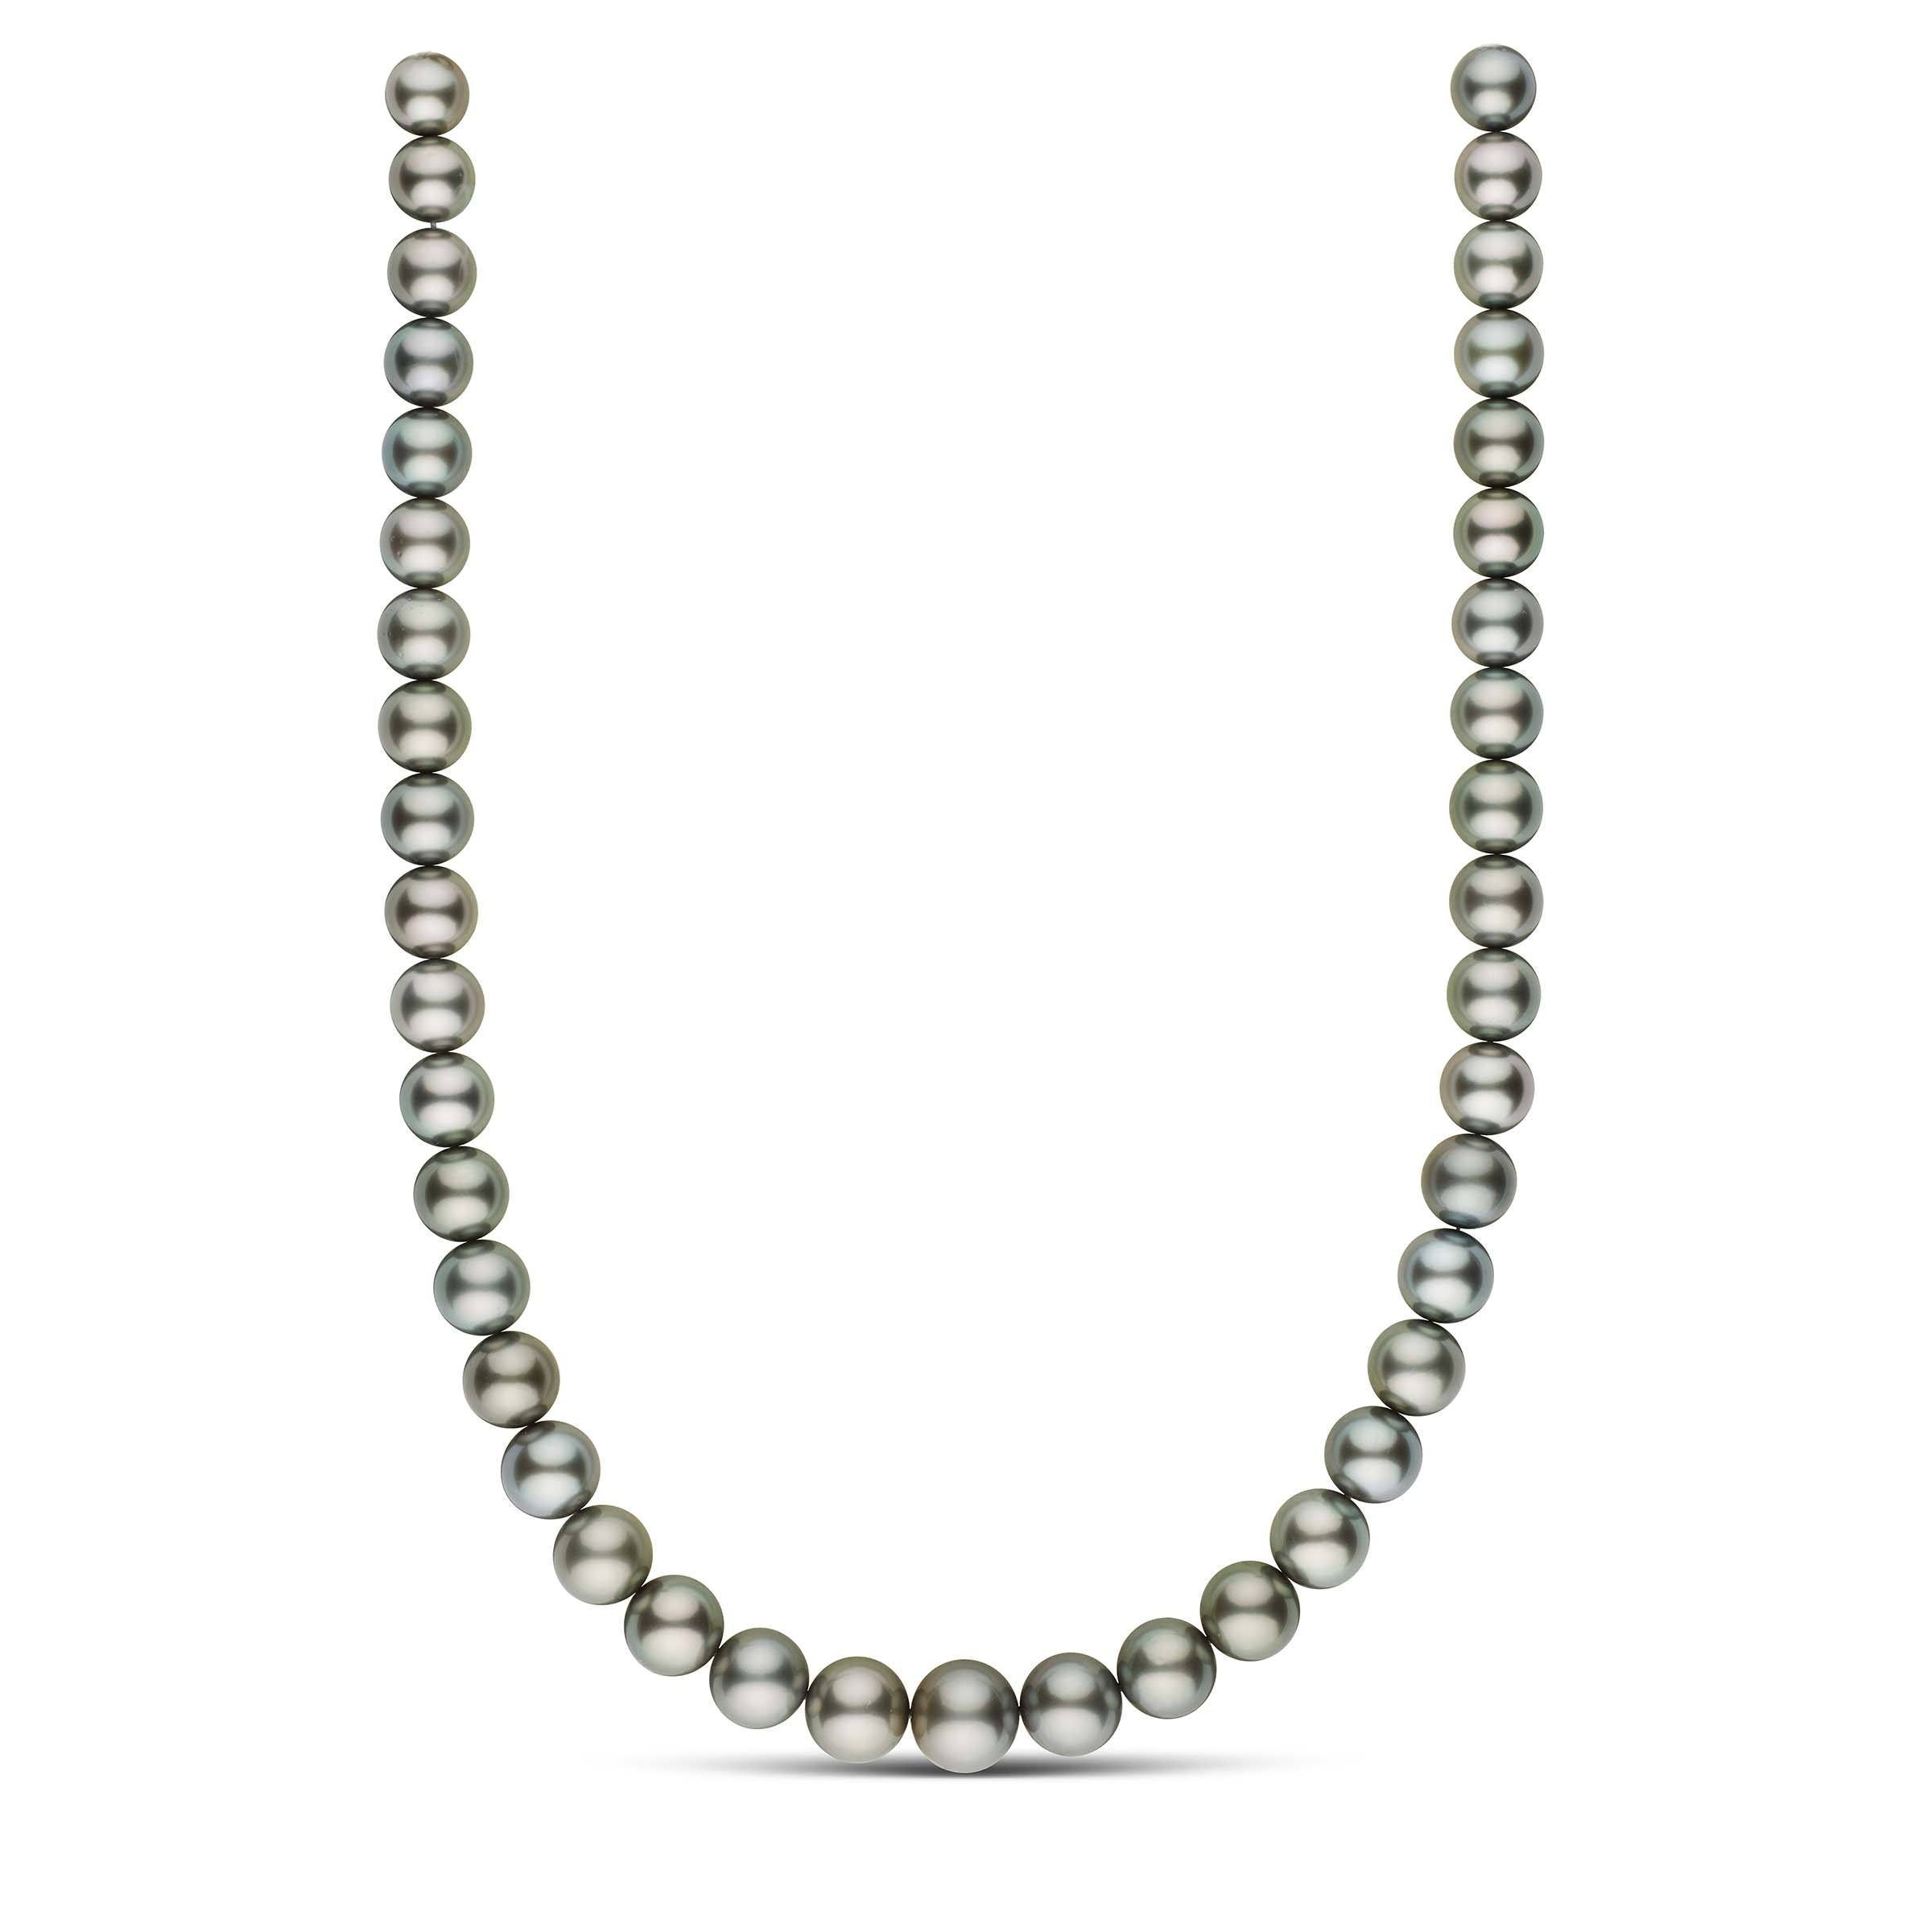 18-inch 9.4-12.5 mm AAA Round Tahitian Pearl Necklace